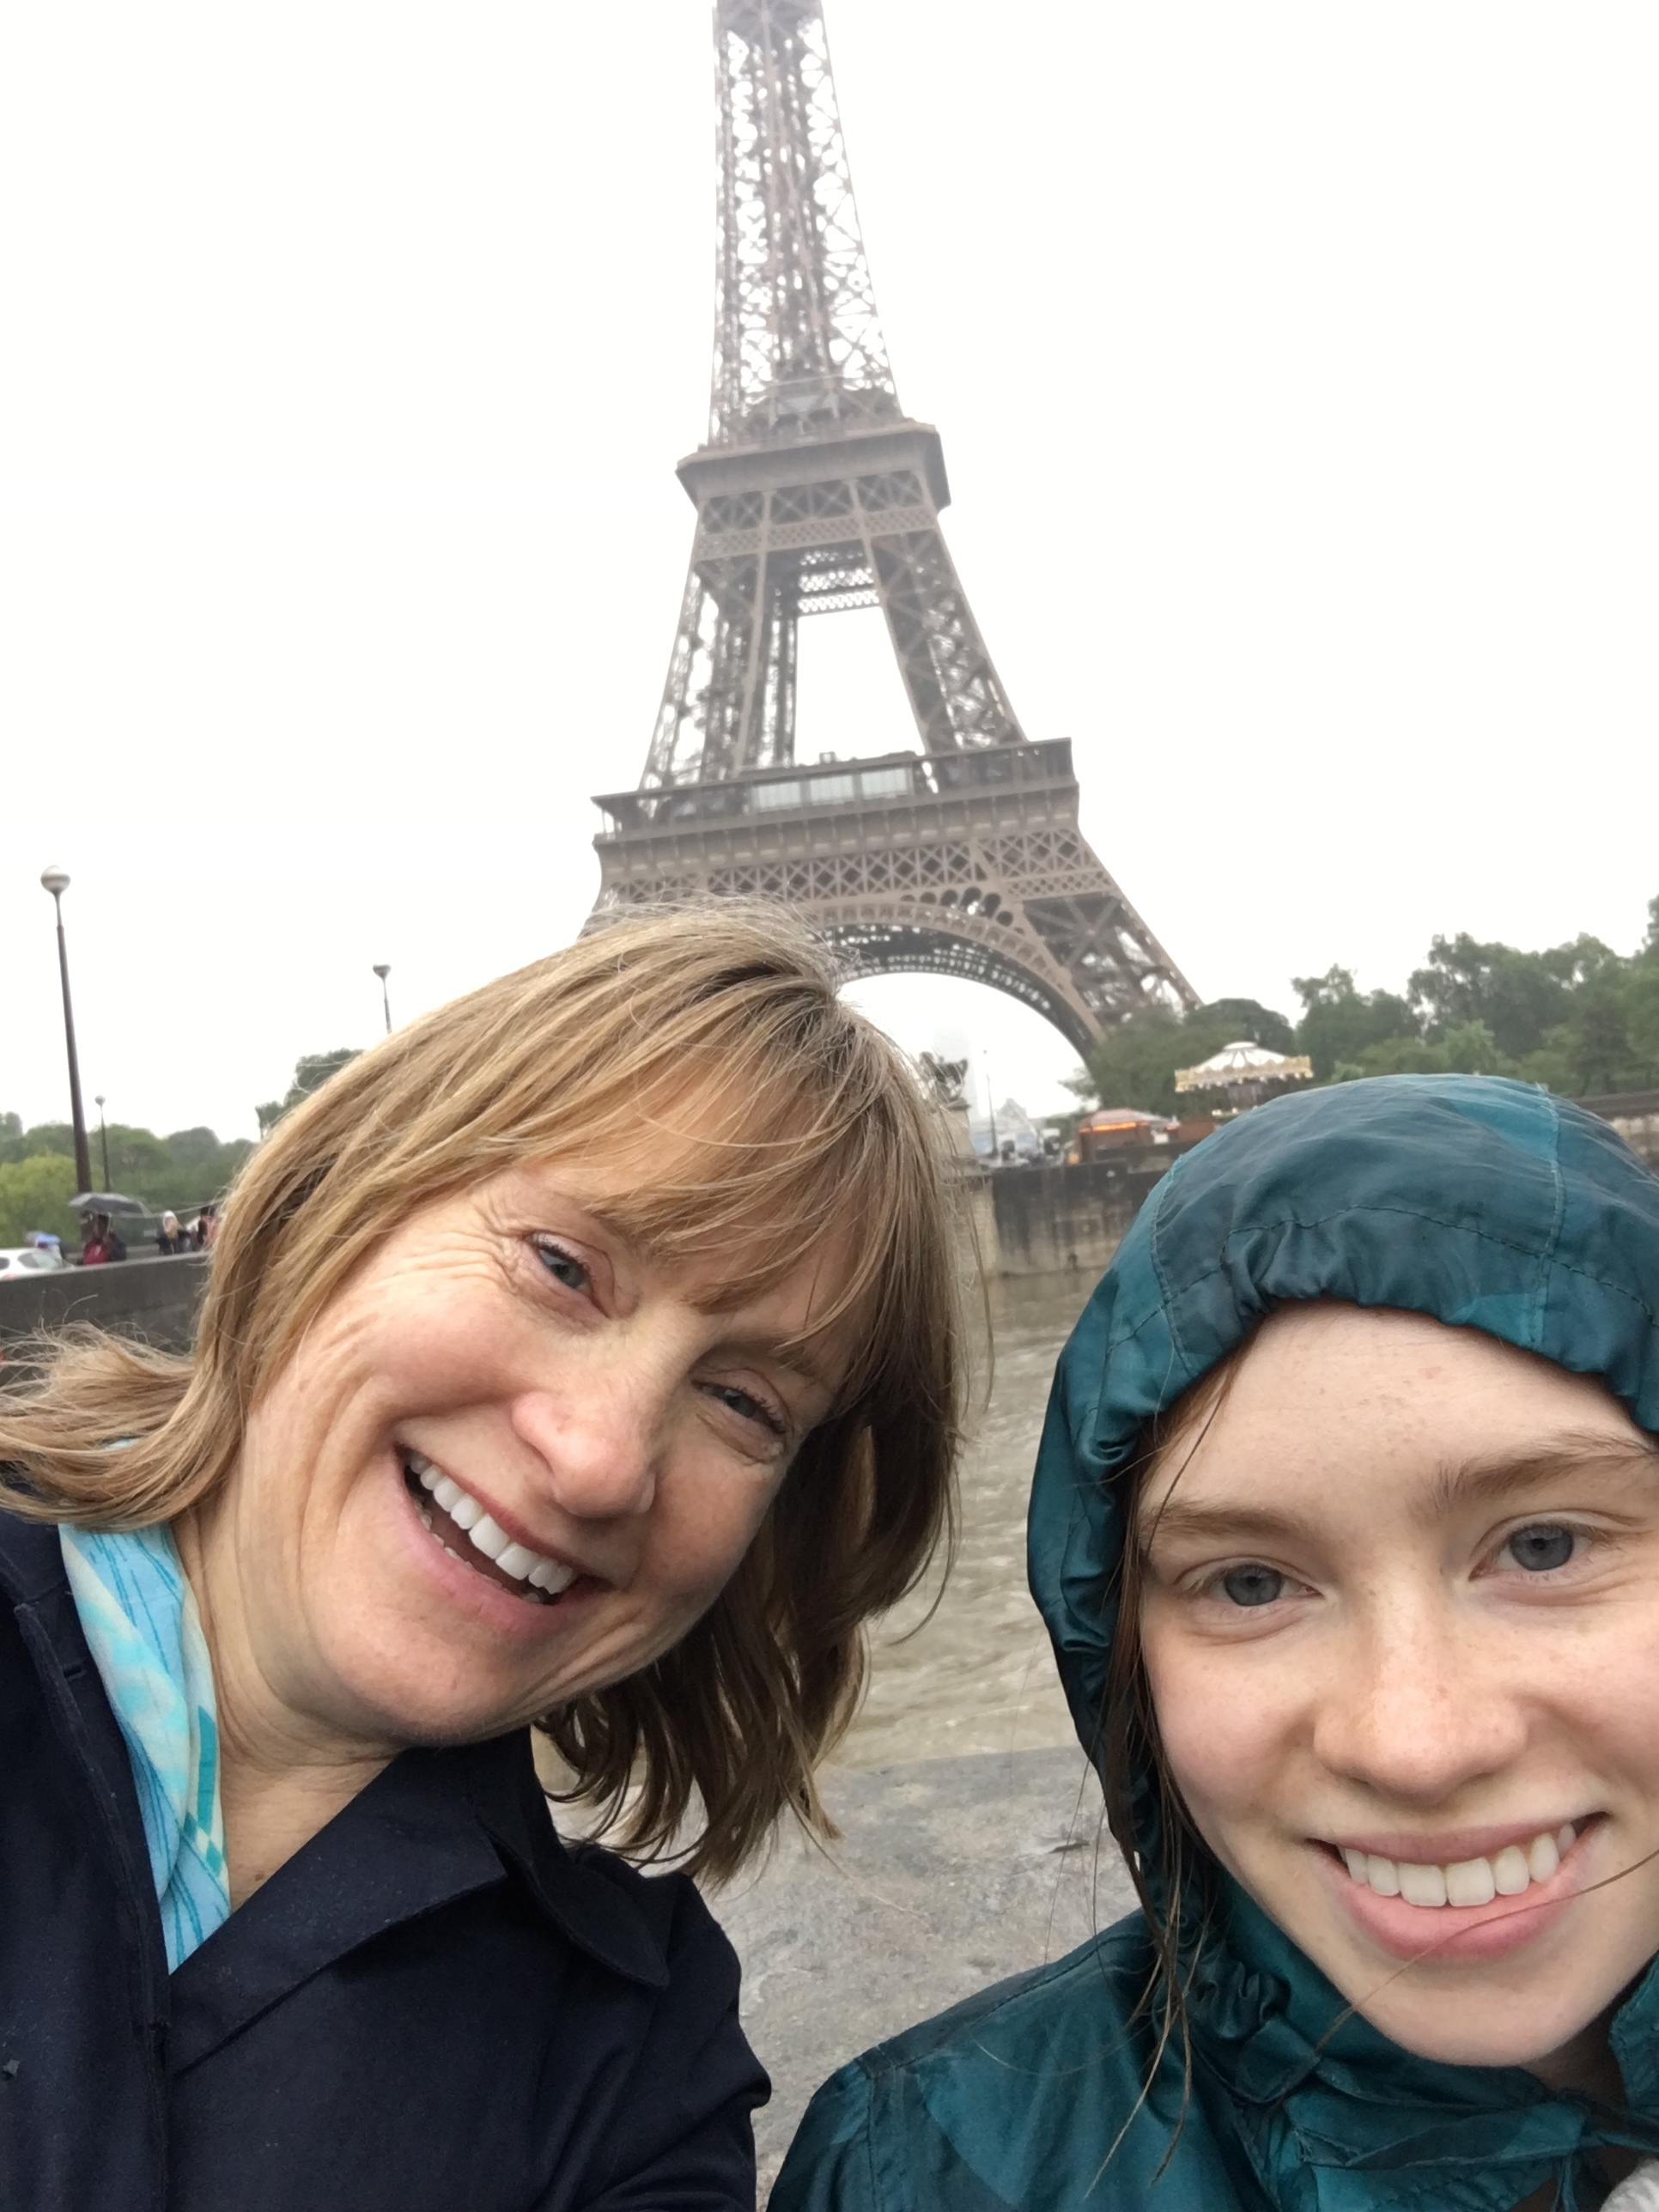 A little (a lot!) of rain didn't discourage us from a walk through Paris...it might not have been how we imagined it, but it ended up being an unimaginably great trip!